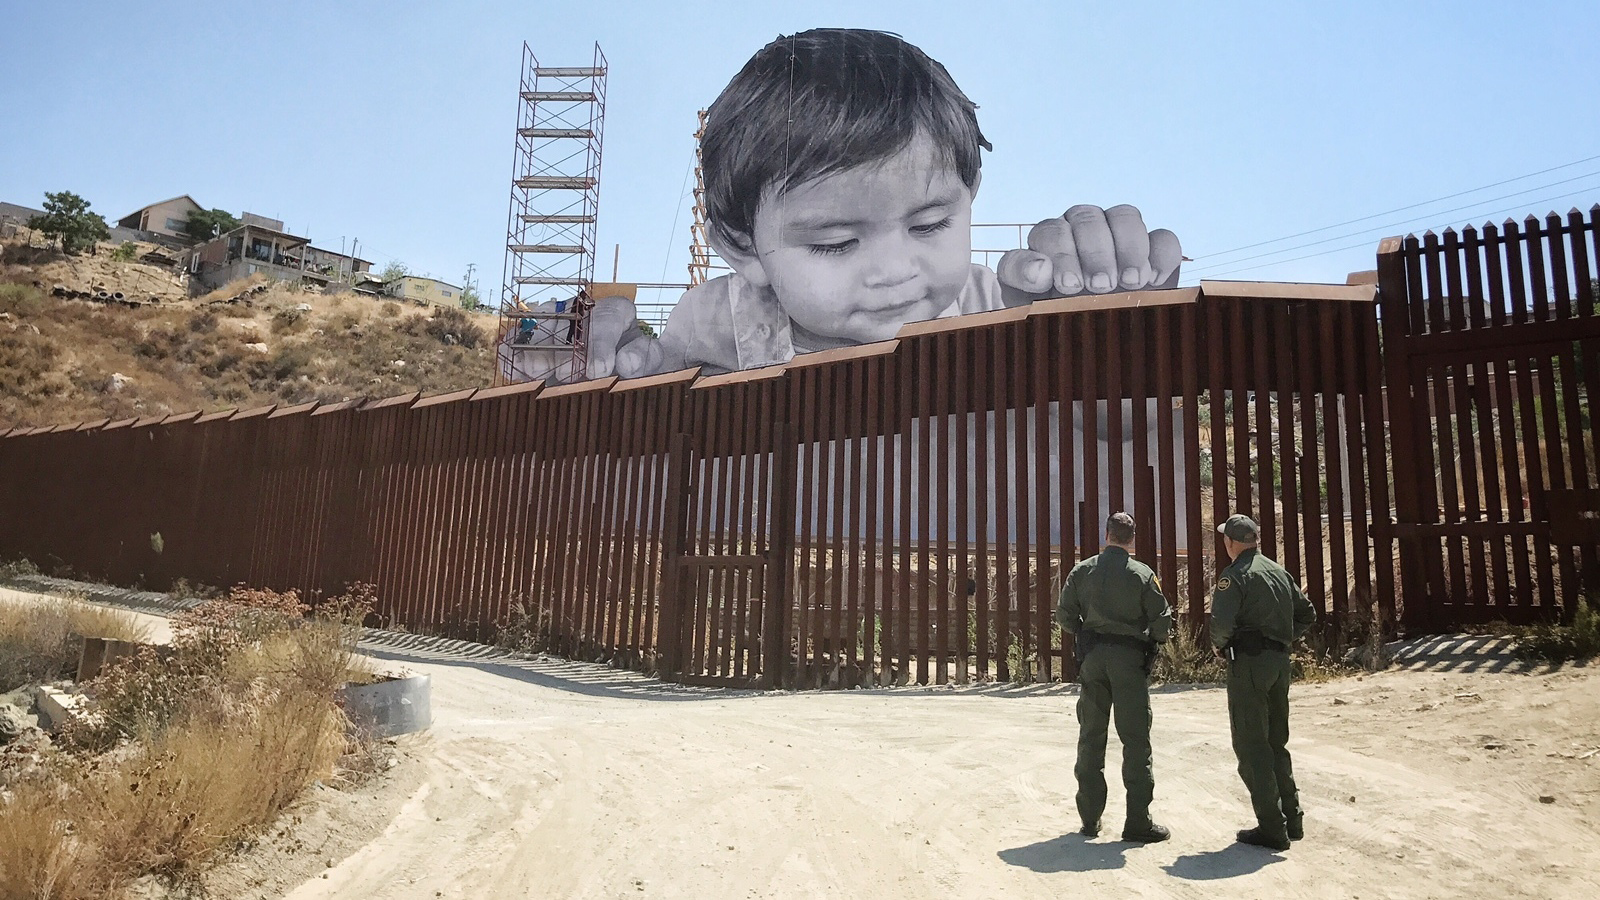 Image: Guillermo Arias/AFP/Getty Images